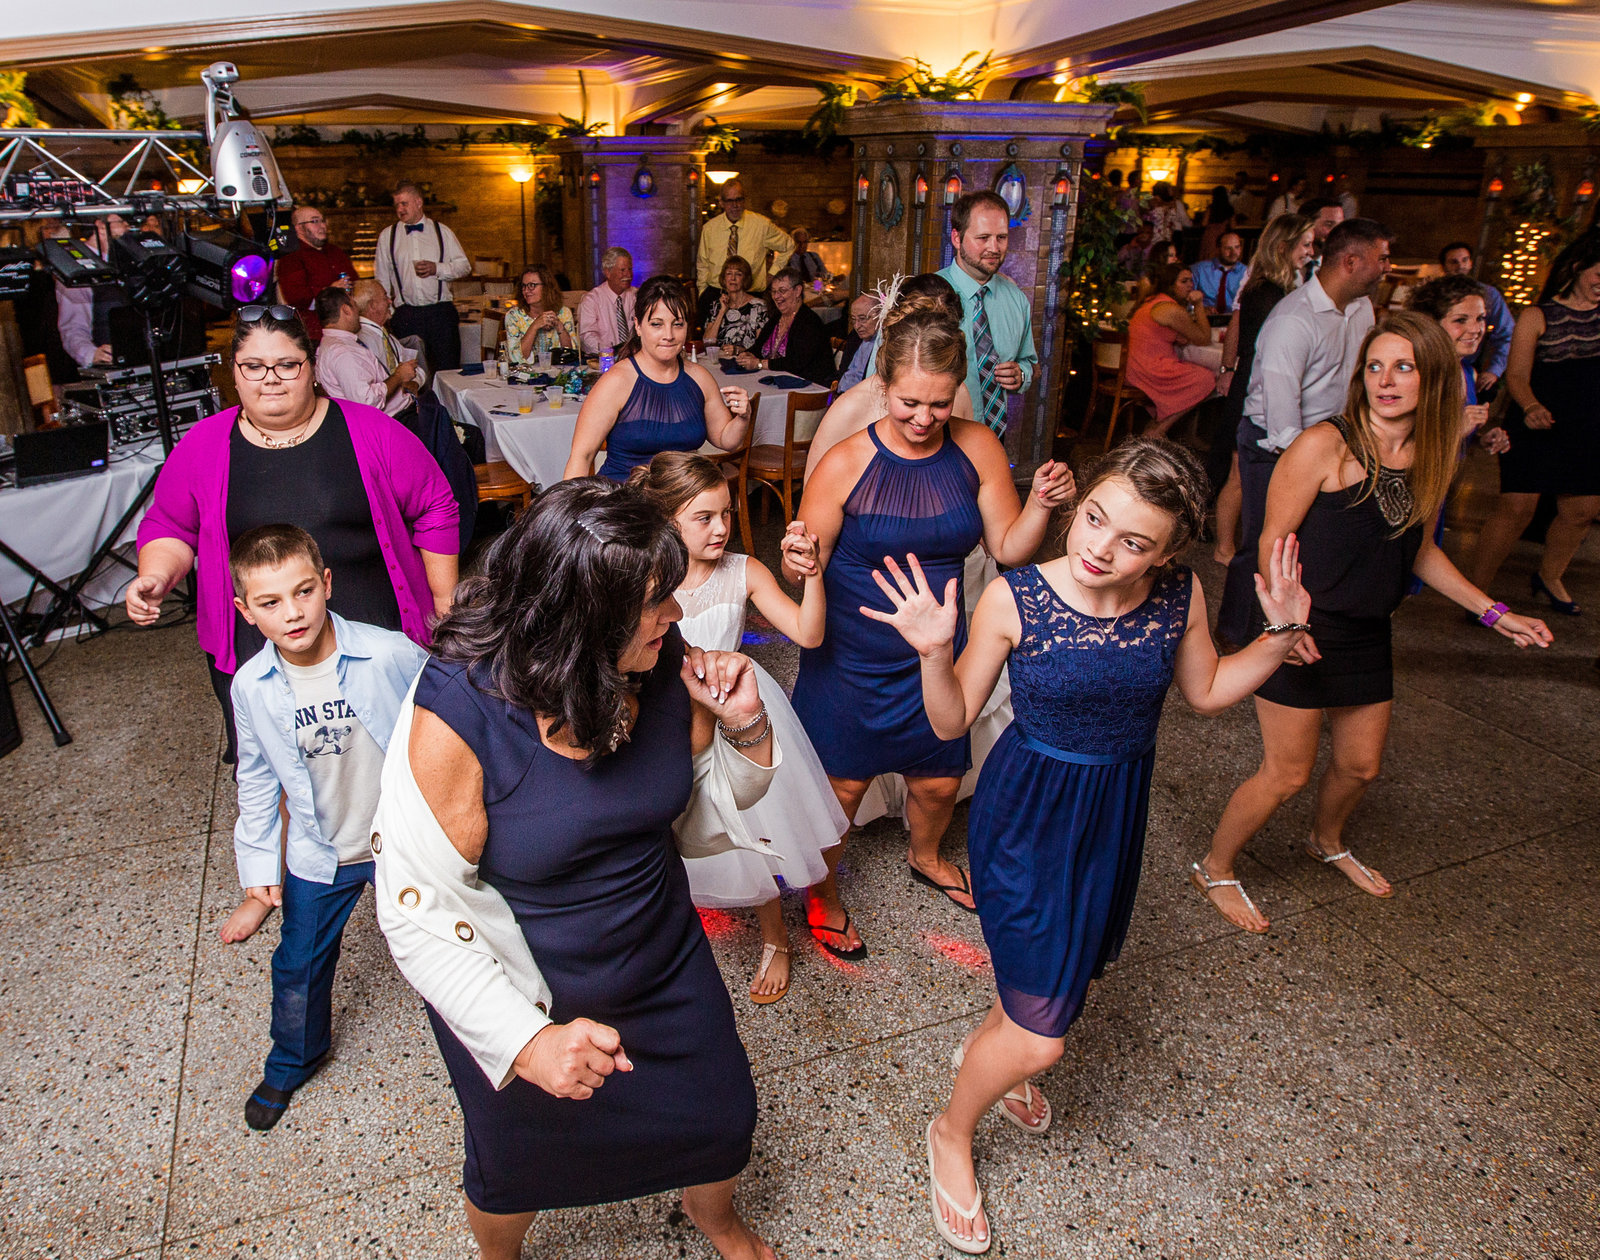 Guests dance at Masonic Temple wedding reception